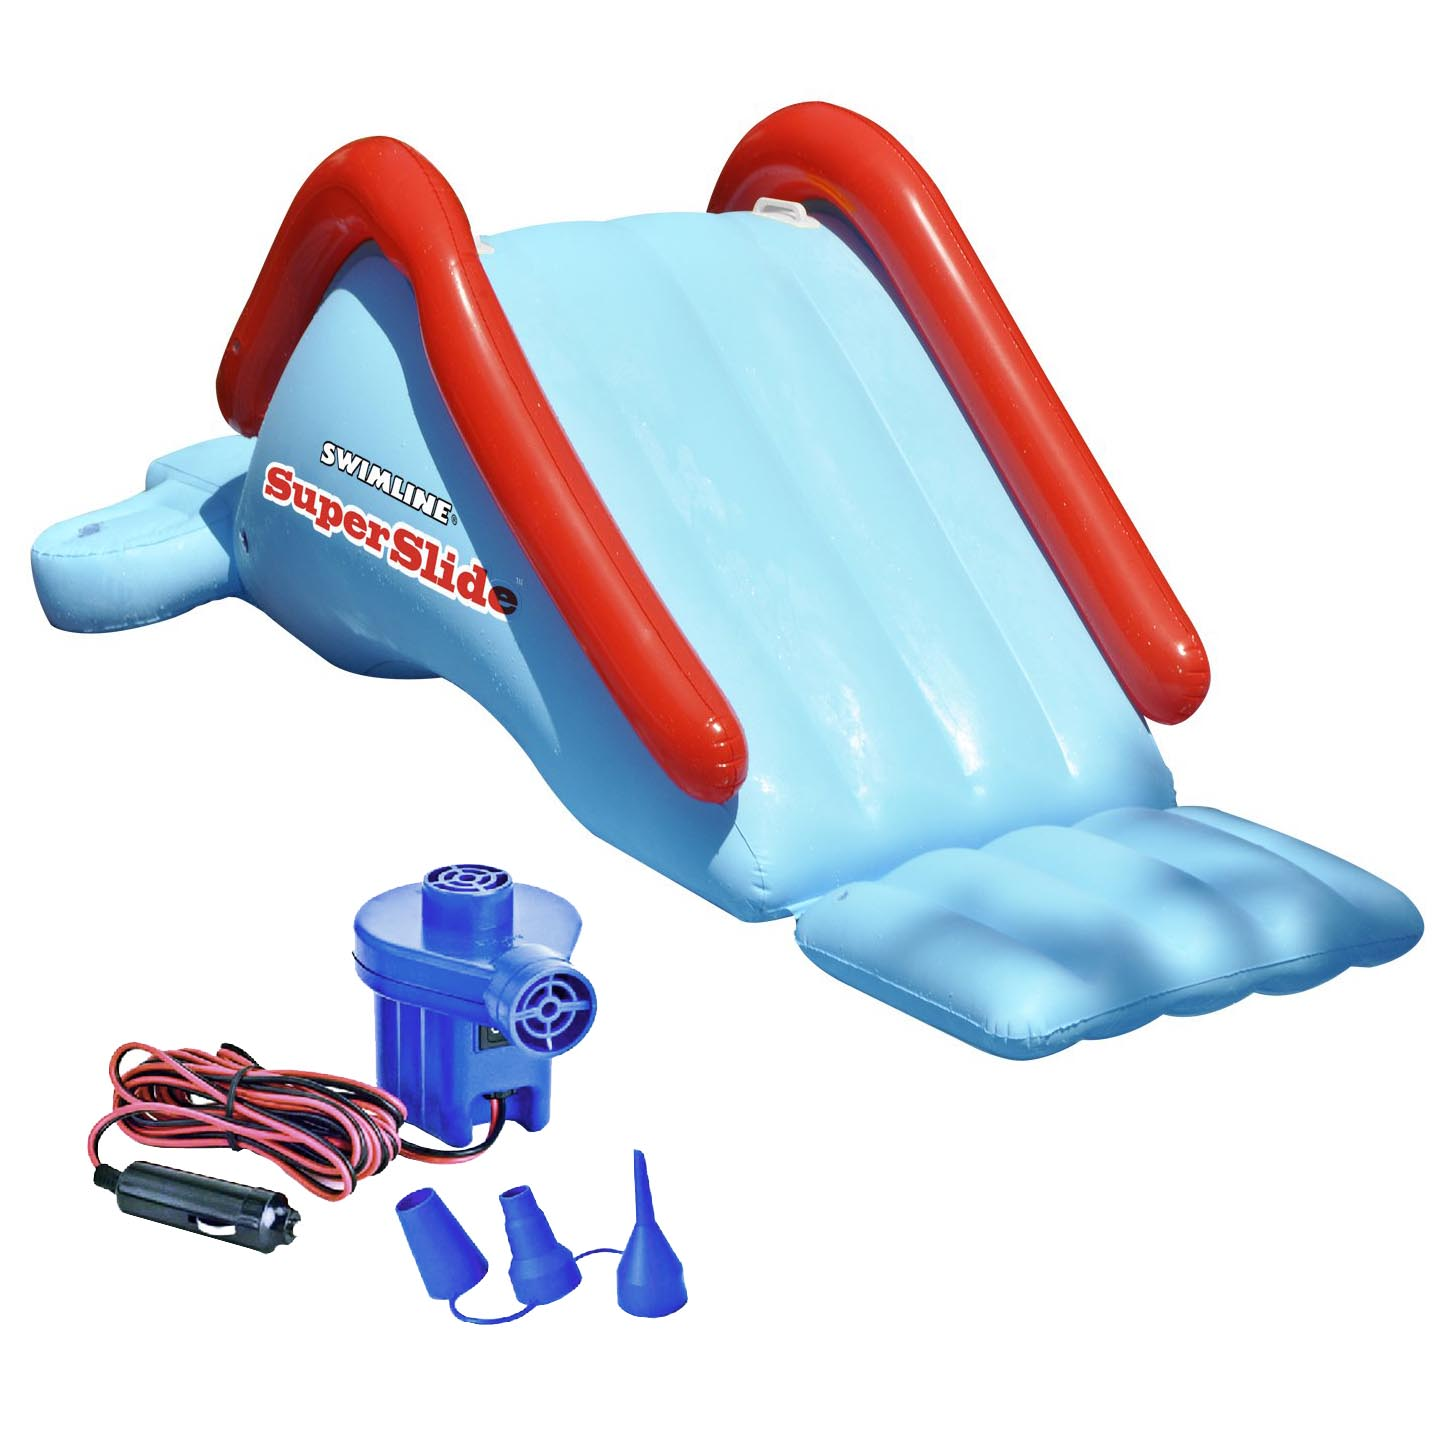 Swimline 90809 Super Water Slide Swimming Pool Inflatable Kids w/ 12V Air Pump